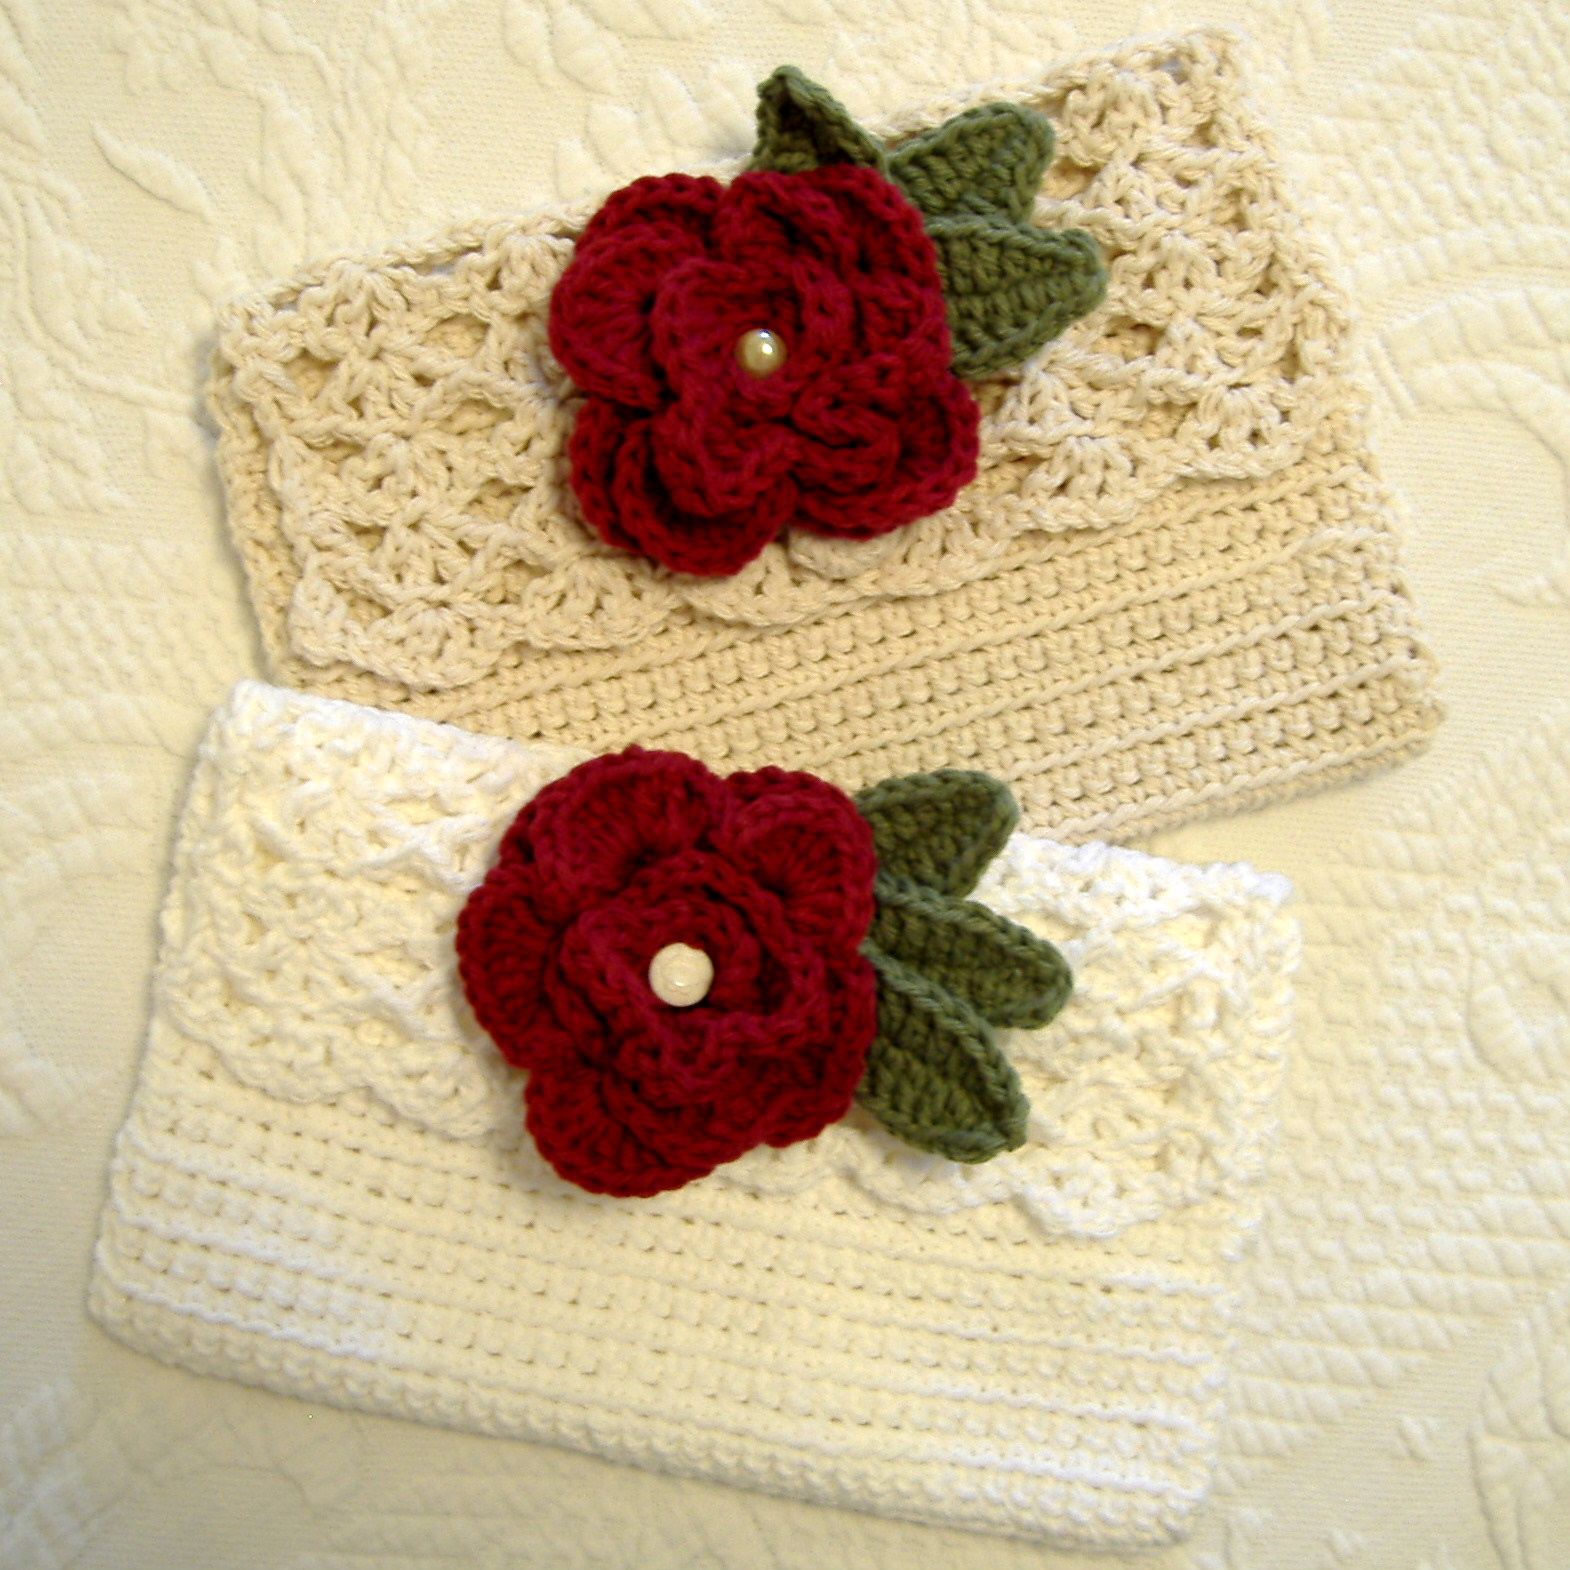 Crochet Bags Video : ... Free Crochet Bag Patterns: Crochet Bags with Crochet Me - Crochet Me